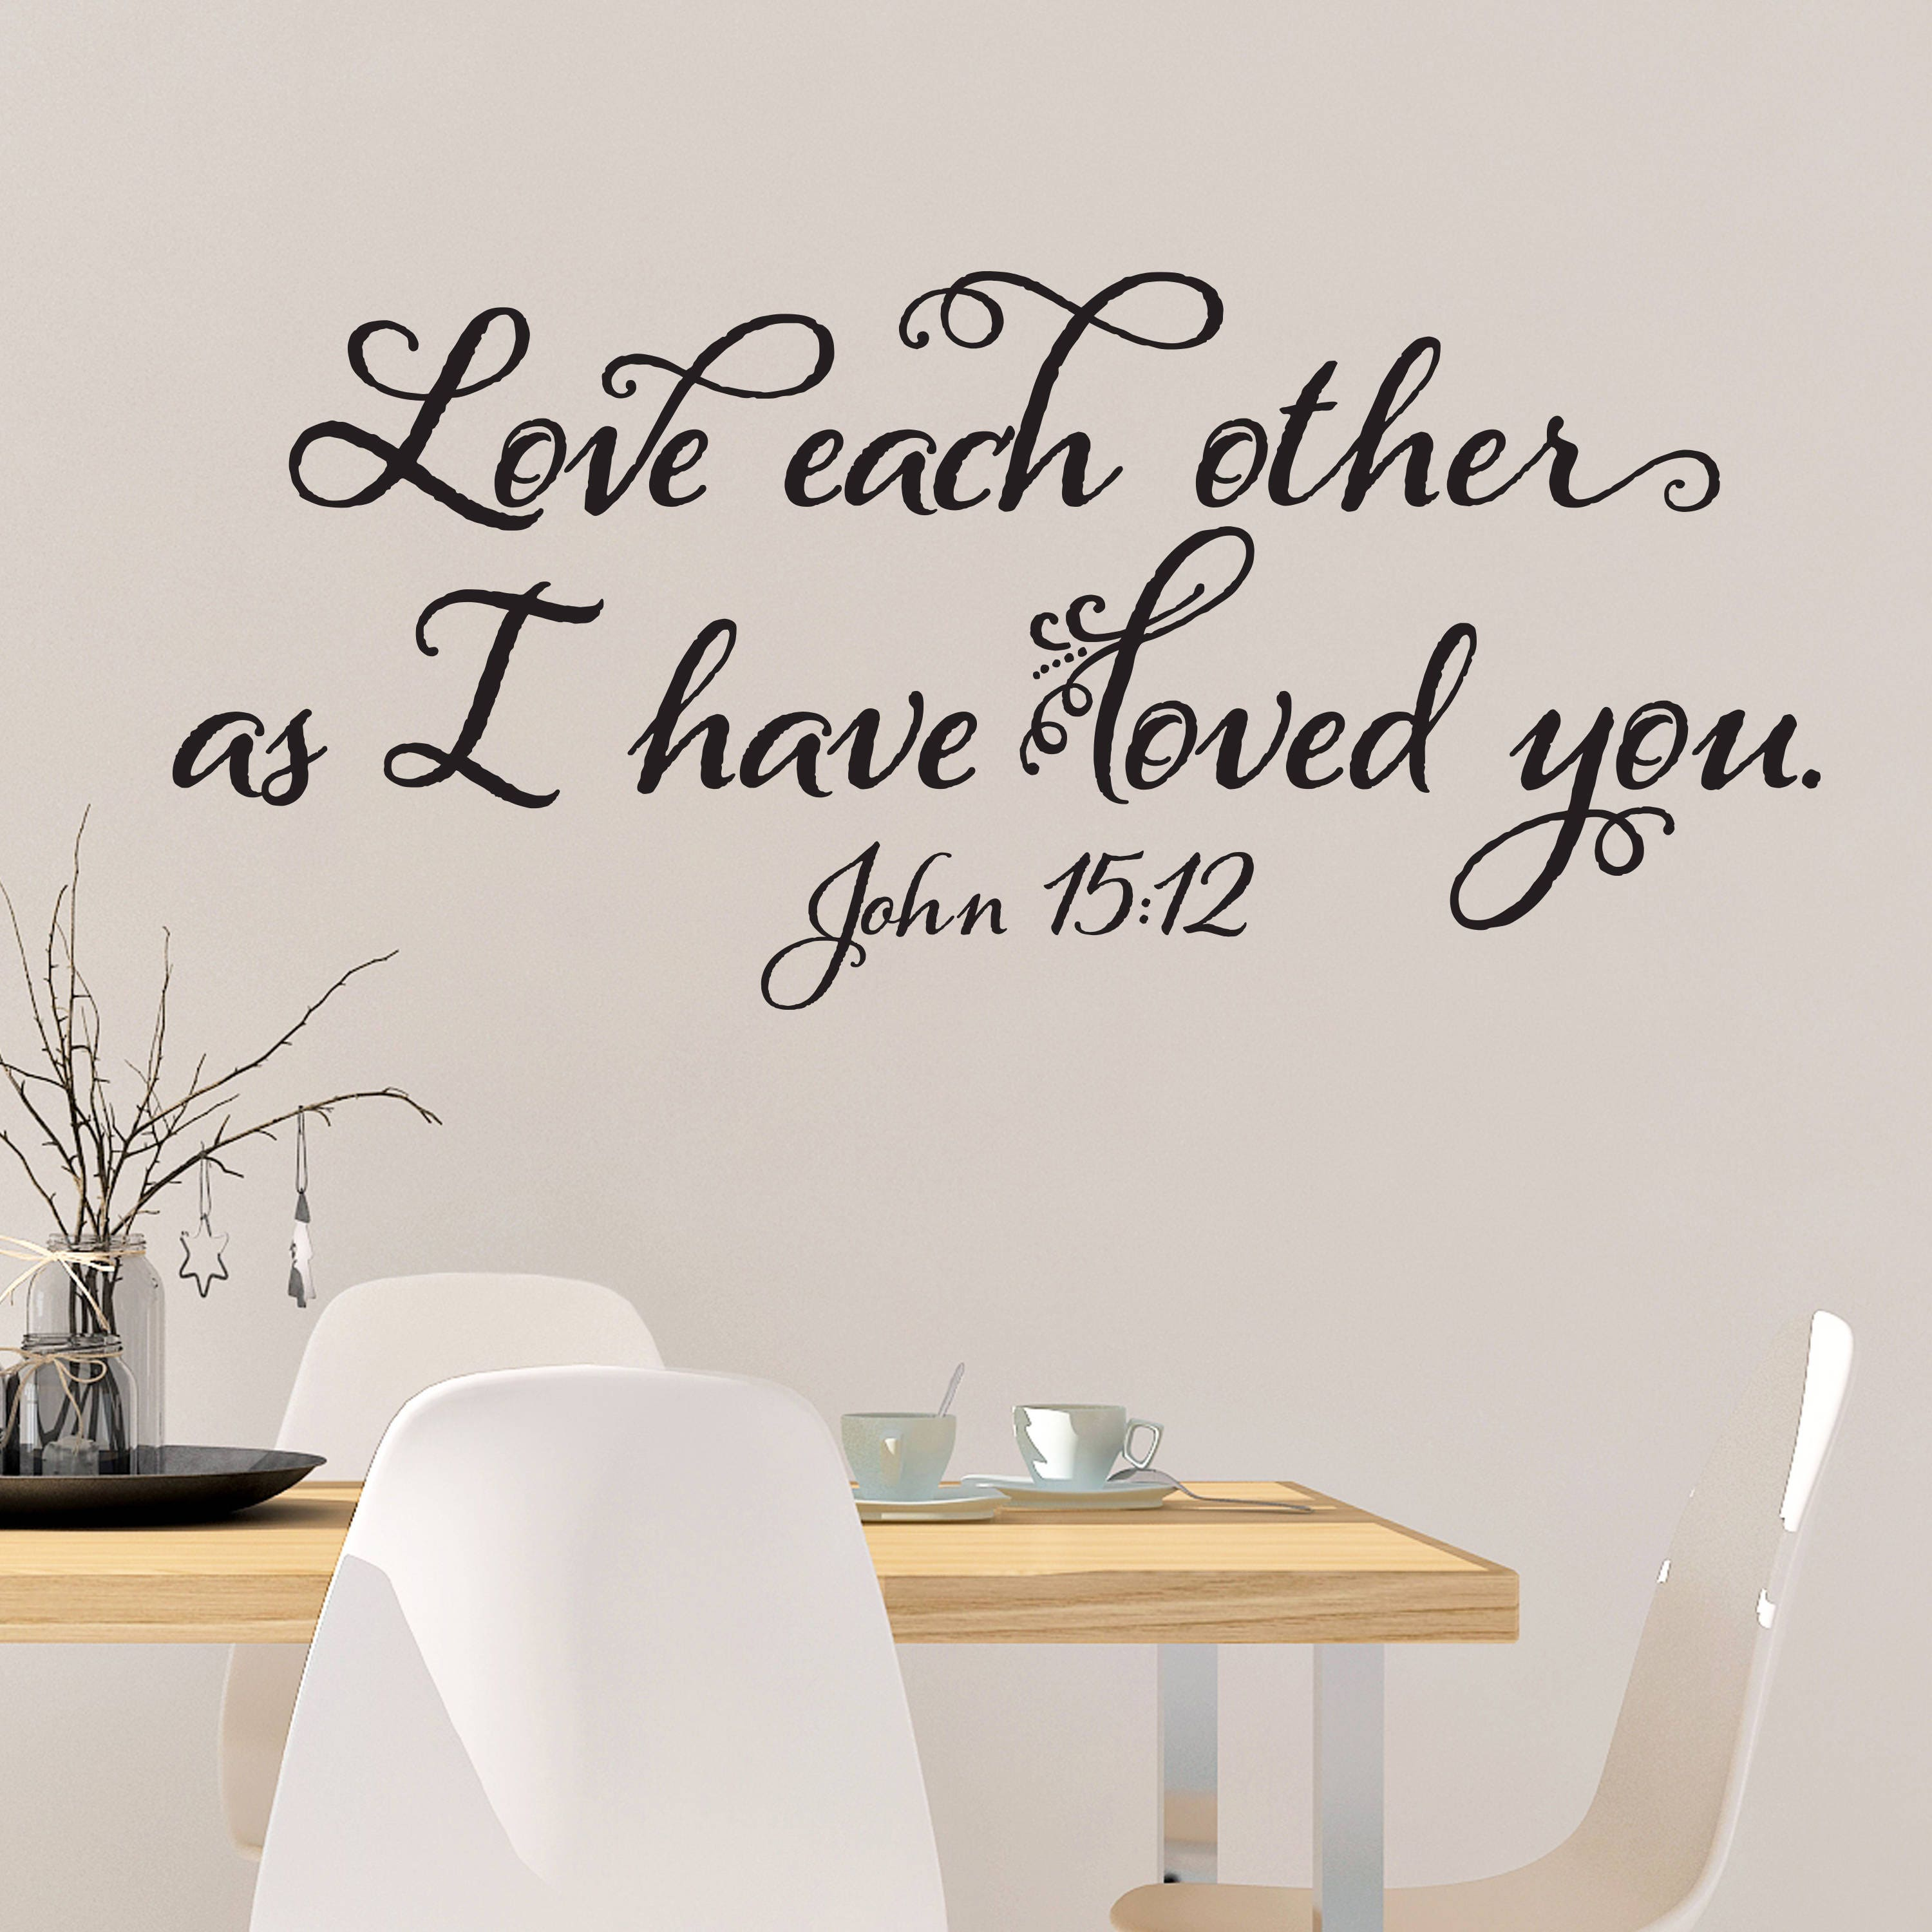 John 15:12 Love Each Other As I Have Loved You Bible Verse